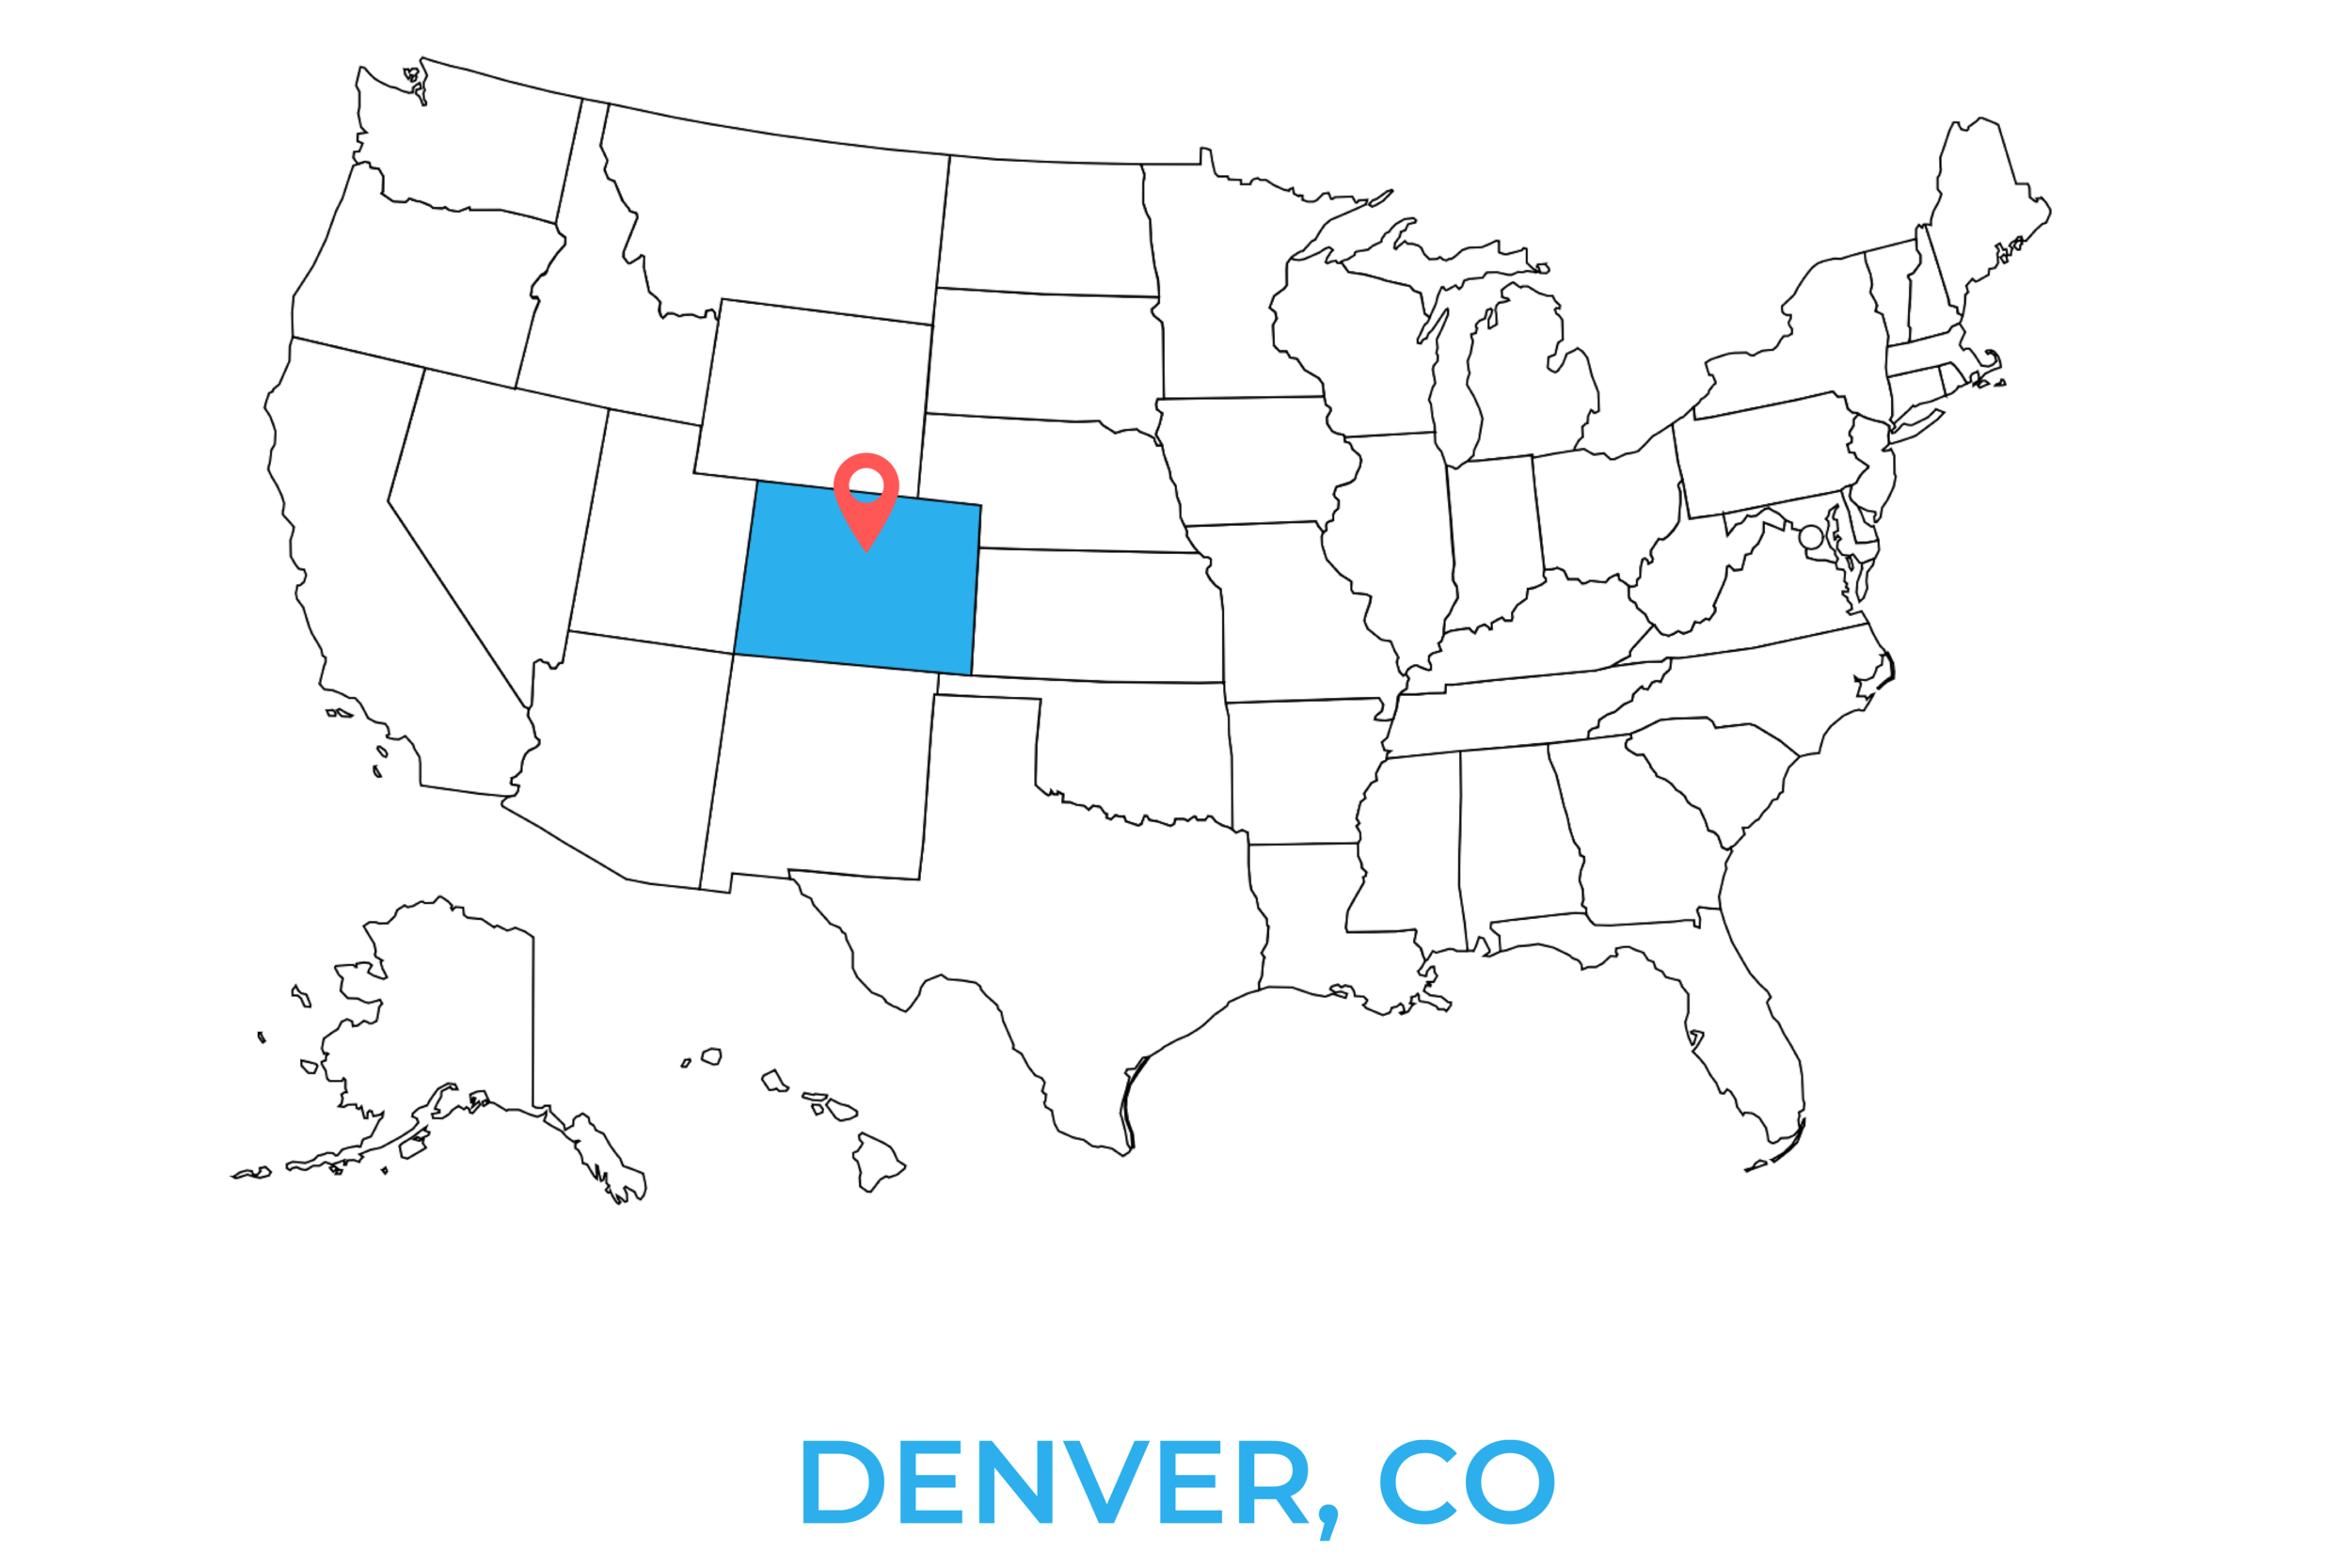 Copy of DENVER, CO.png